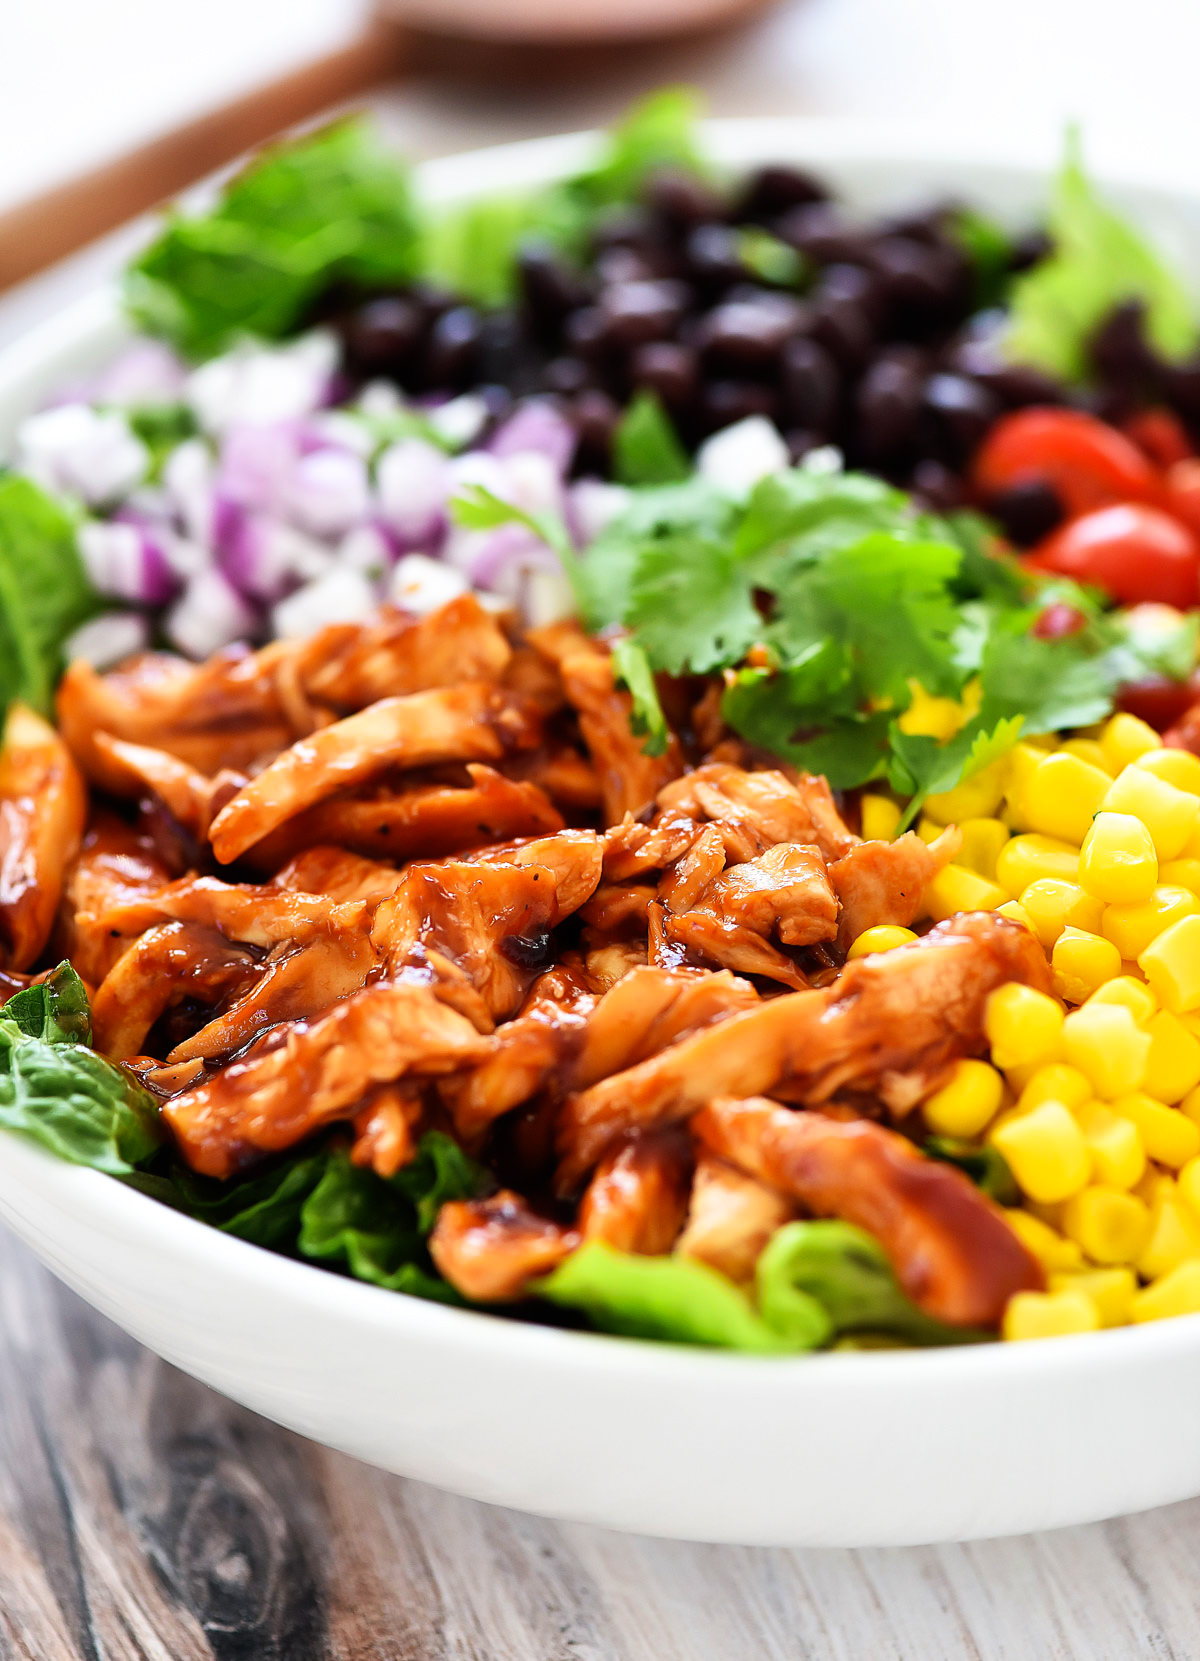 BBQ Chicken Salad is filled with romaine lettuce, bbq chicken, black, beans, corn, tomatoes and more!